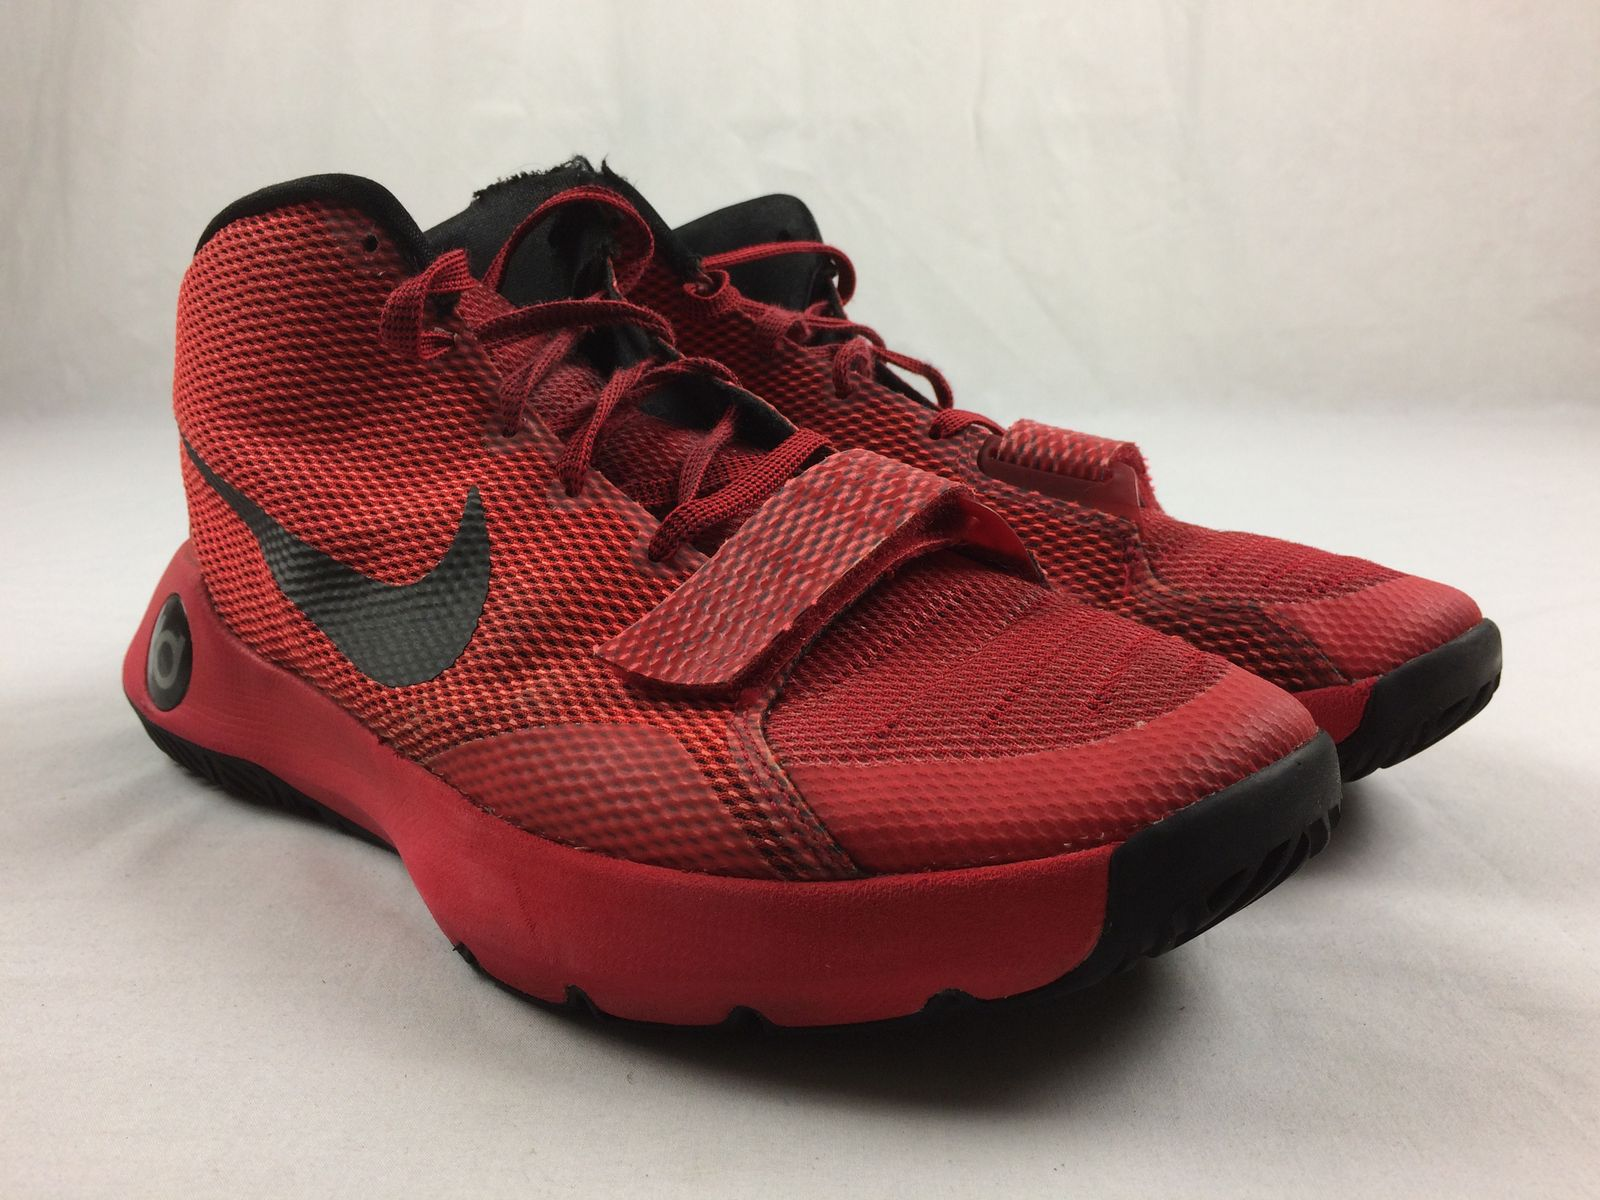 separation shoes def3e 5088f Trey basket Kd Iii Rouge Chaussure Air ball 12 5 de D occasionEbay hommes  Nike HwBW4FYq